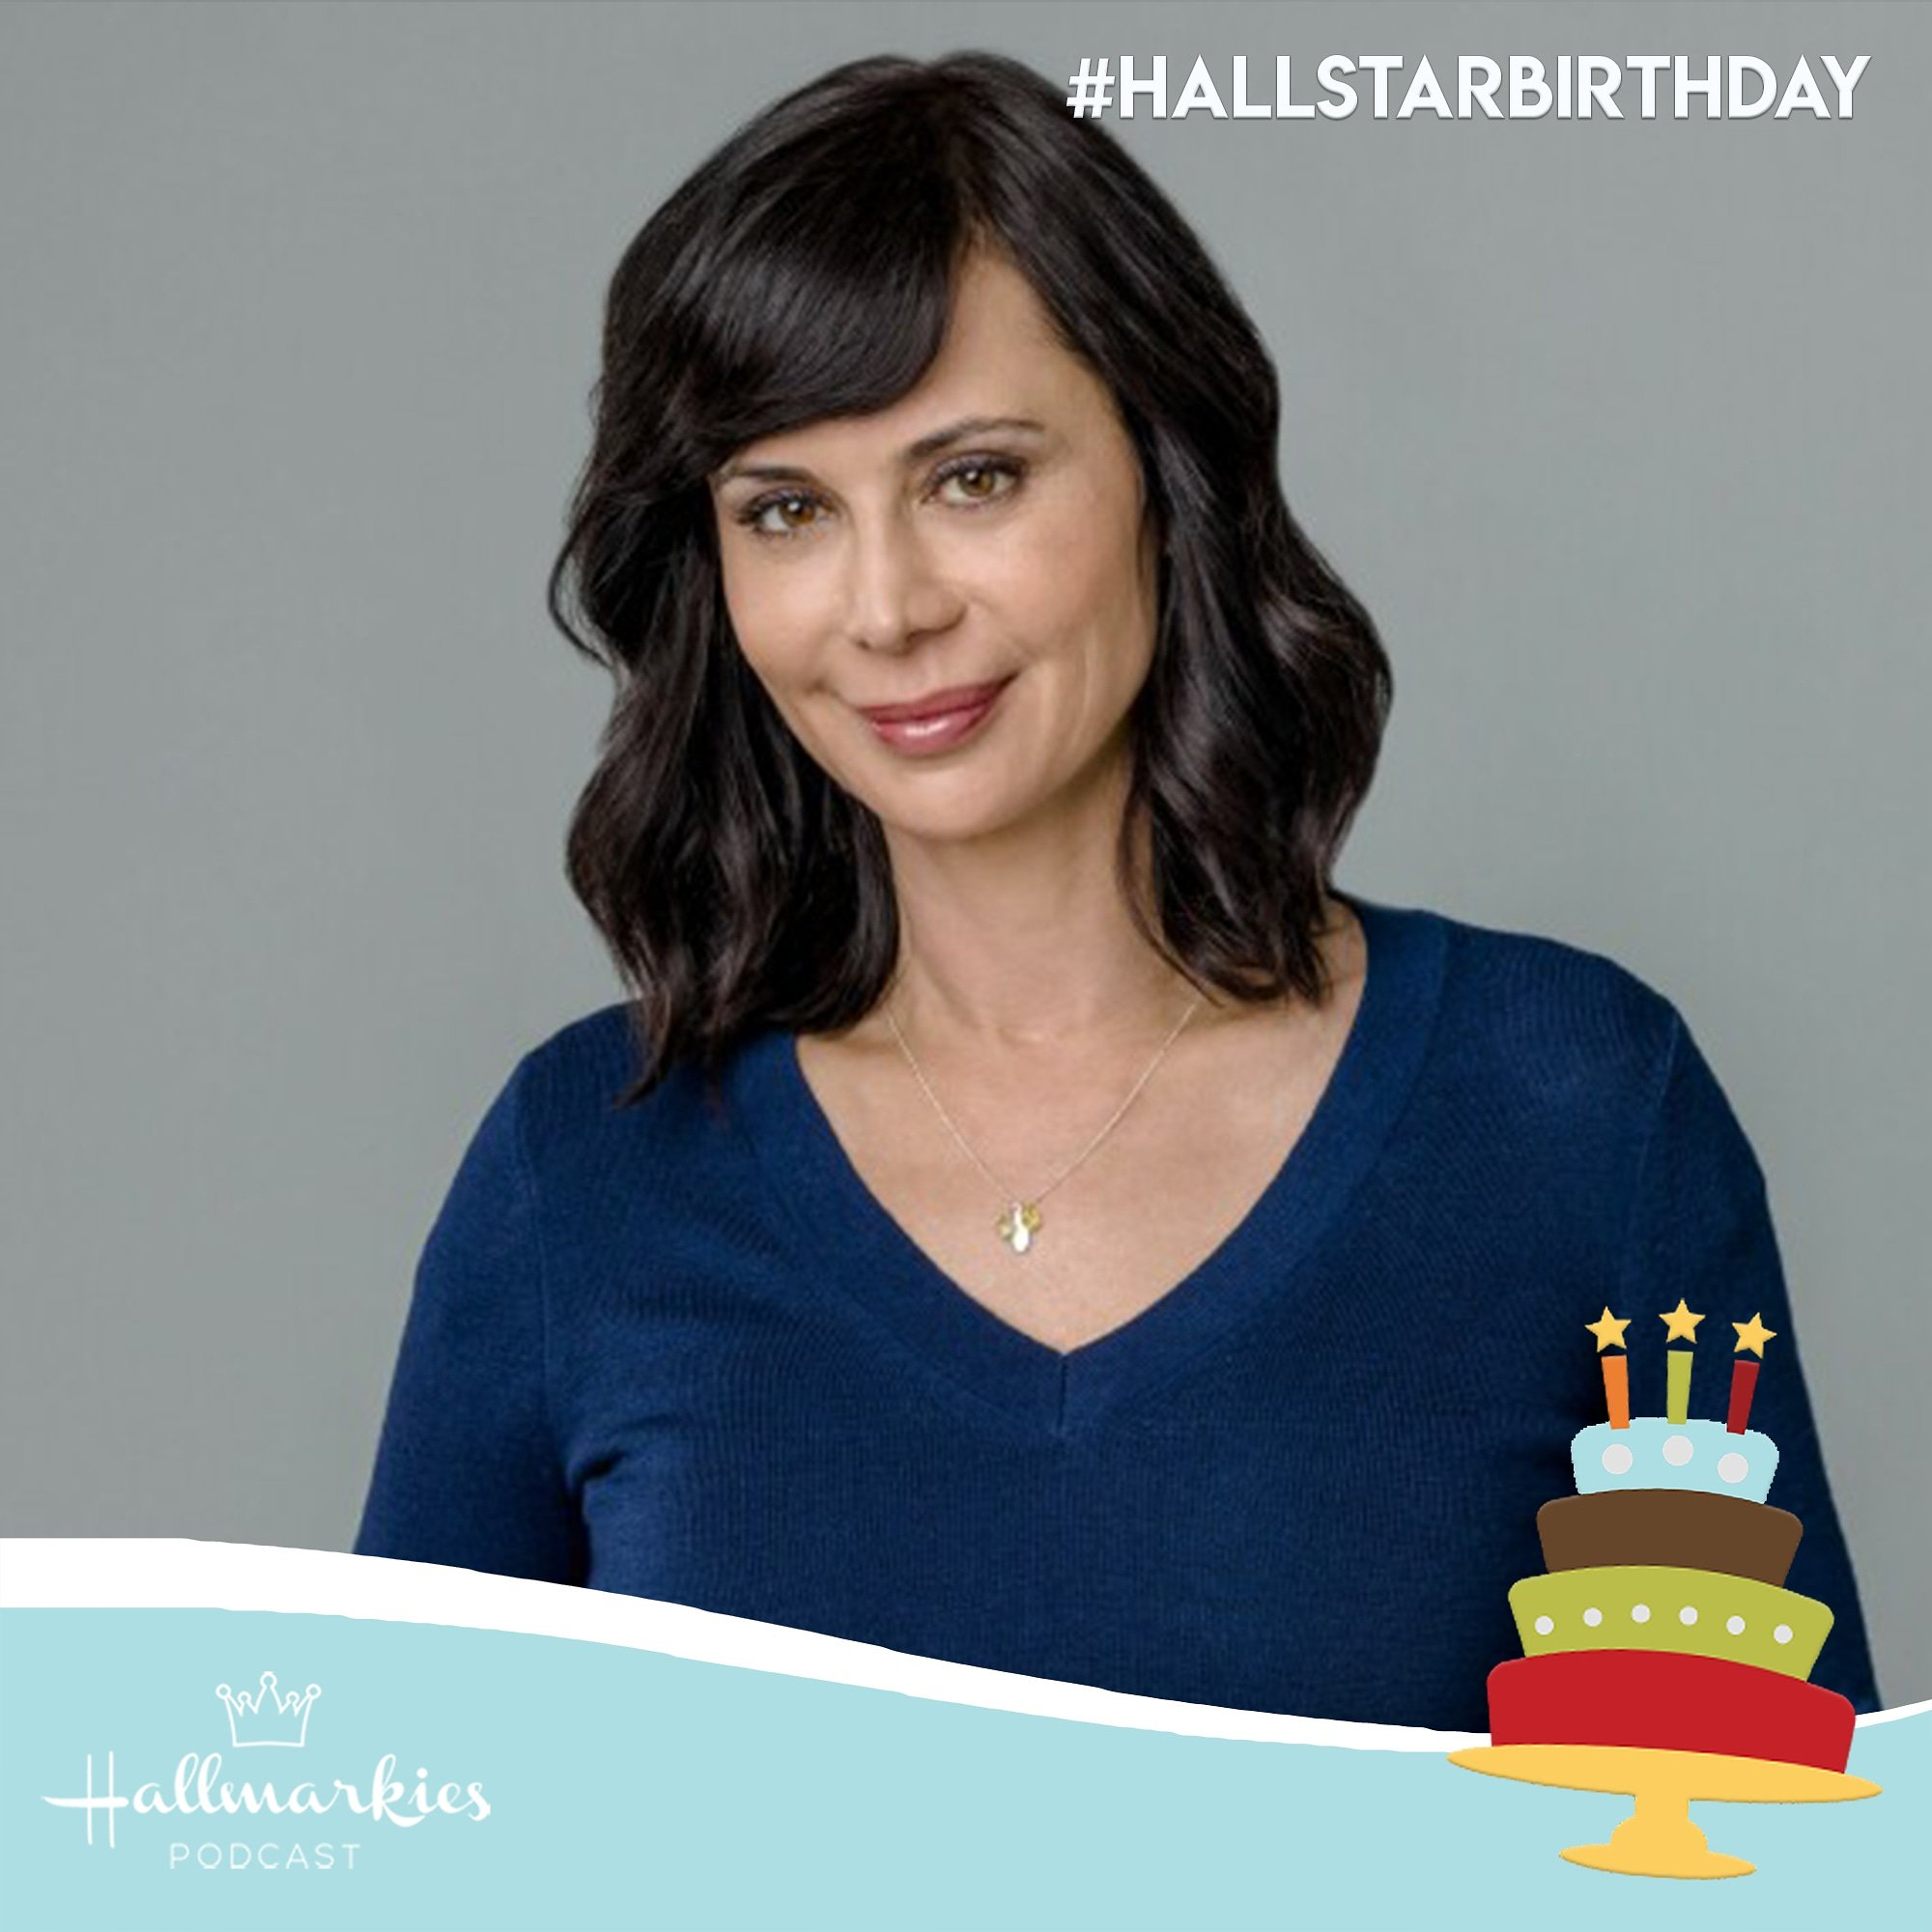 Happy Birthday to the Good Witch herself Catherine Bell